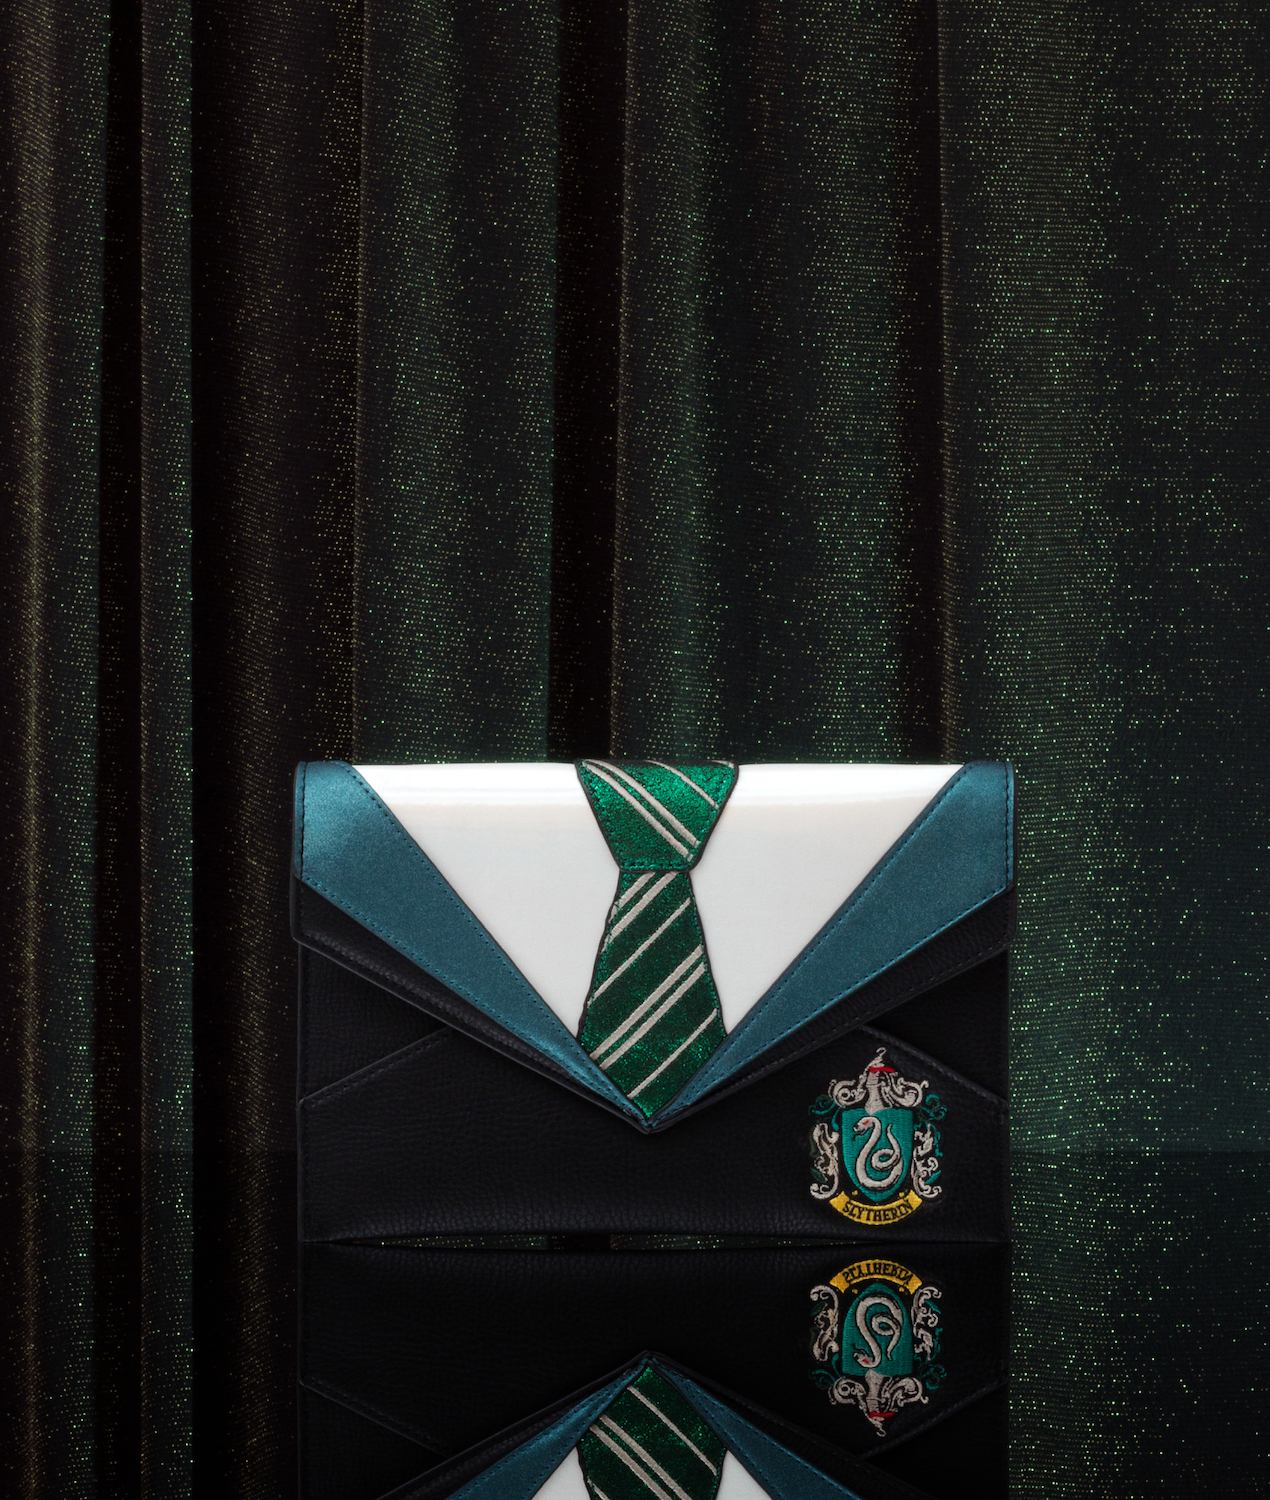 The Danielle Nicole Slytherin Uniform Clutch is for the cunning and ambitious.